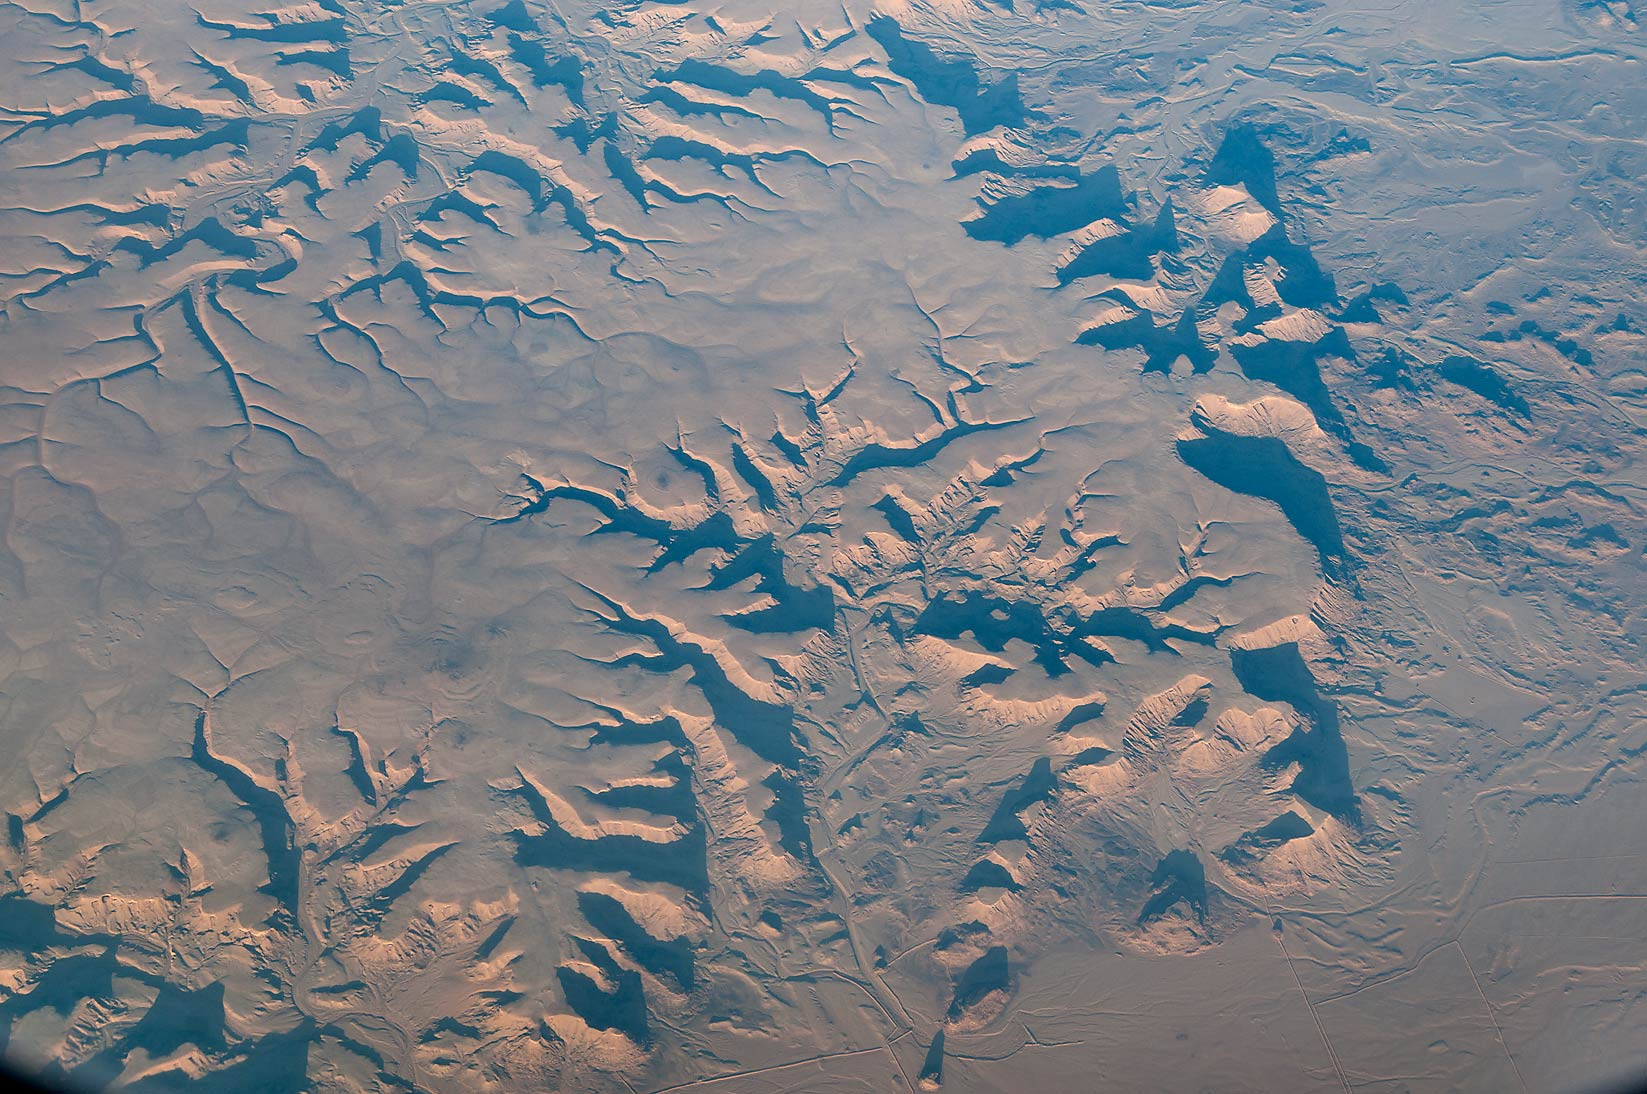 Al Jawf promontory, north-west from Khashm al...window of a plane from Houston to Doha